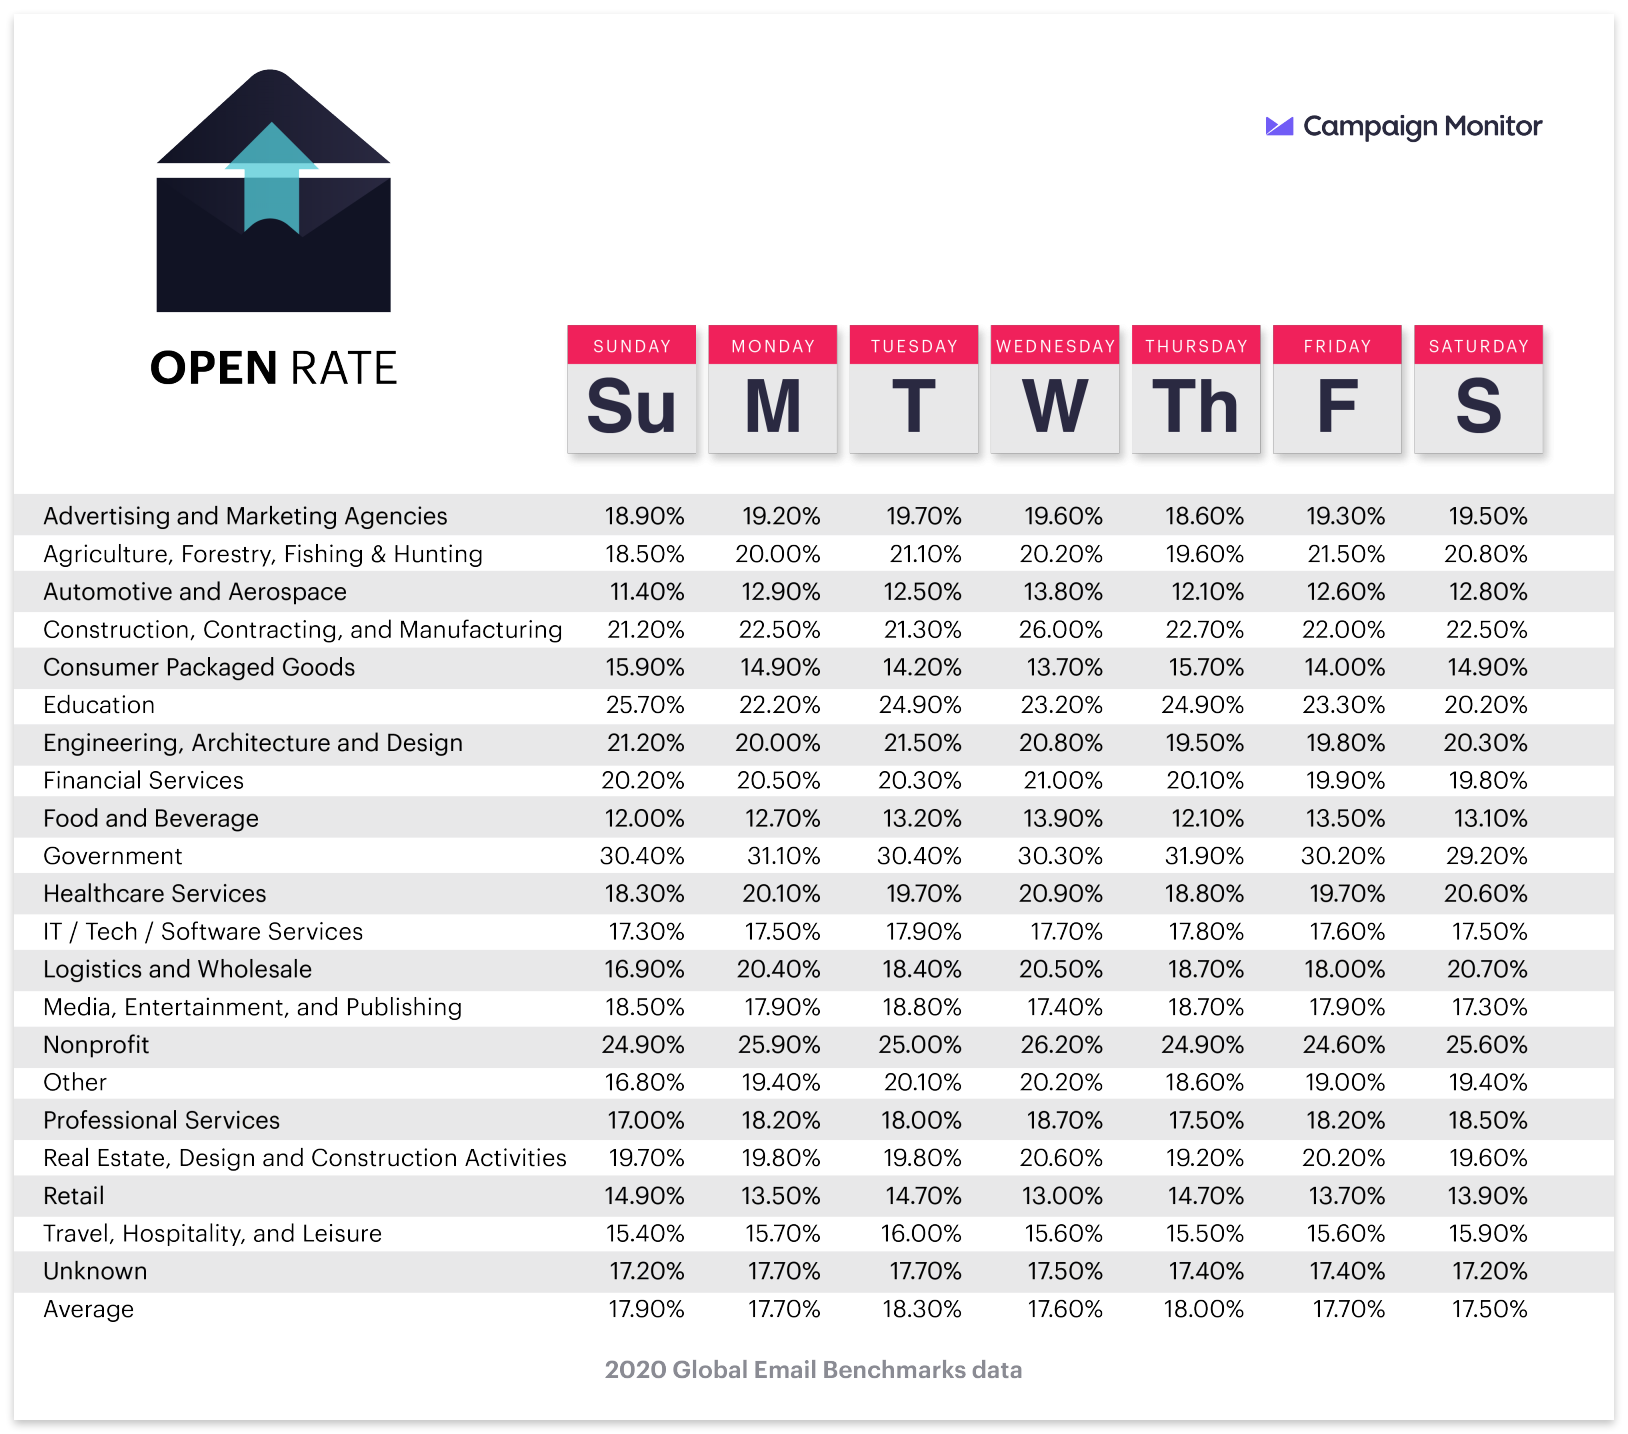 Open rates by industry and day of the week